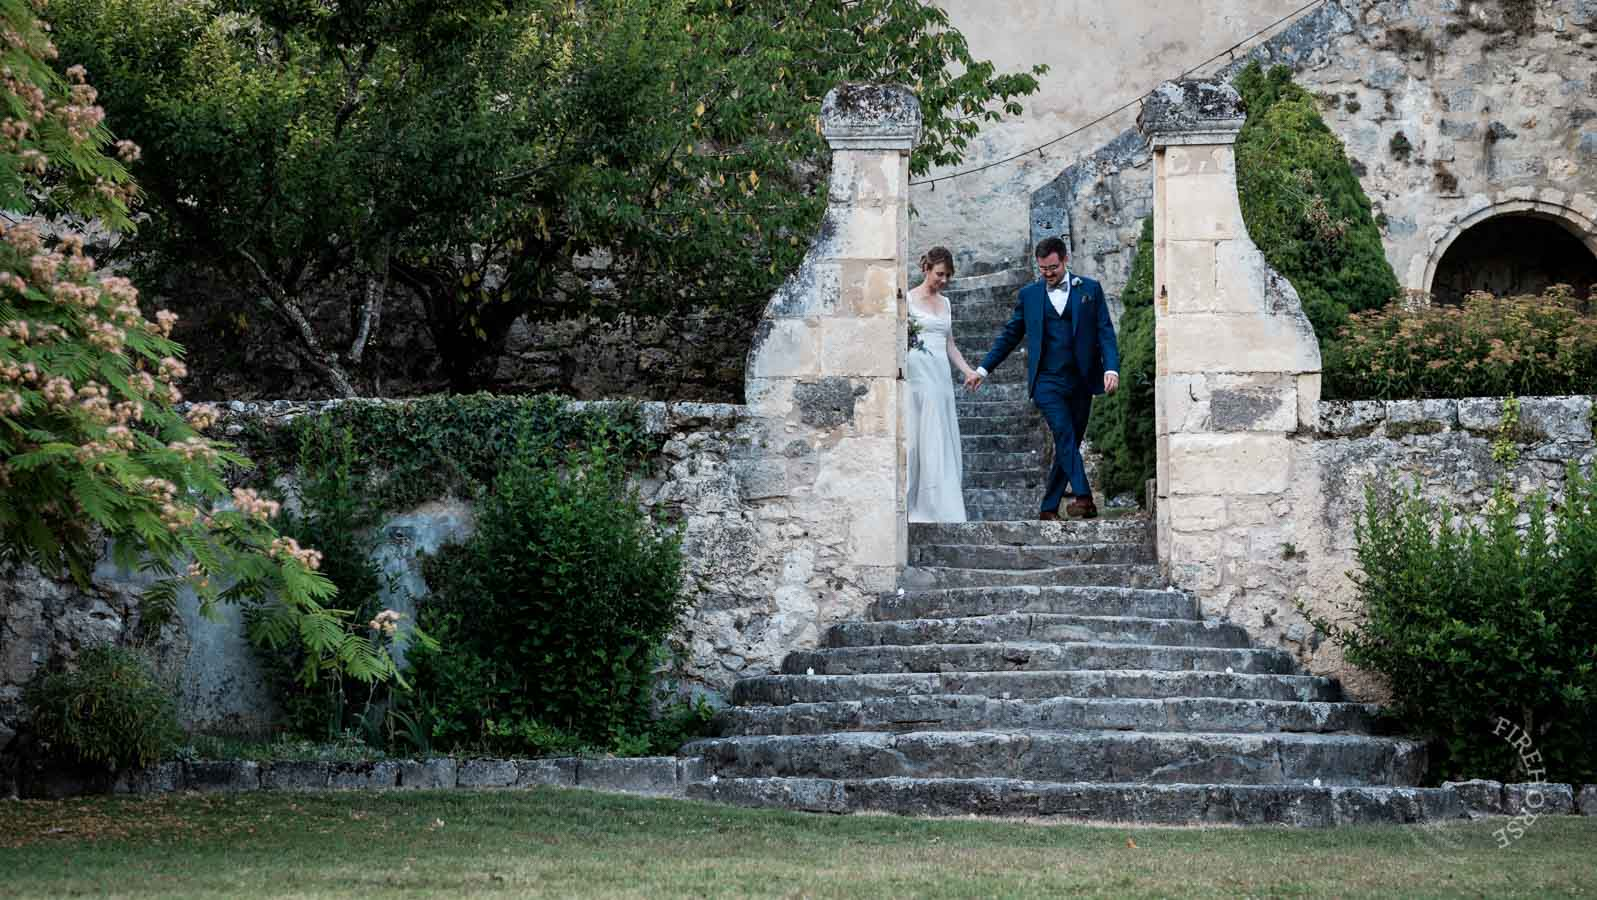 Lot-et-Garonne-Wedding-Photography-287